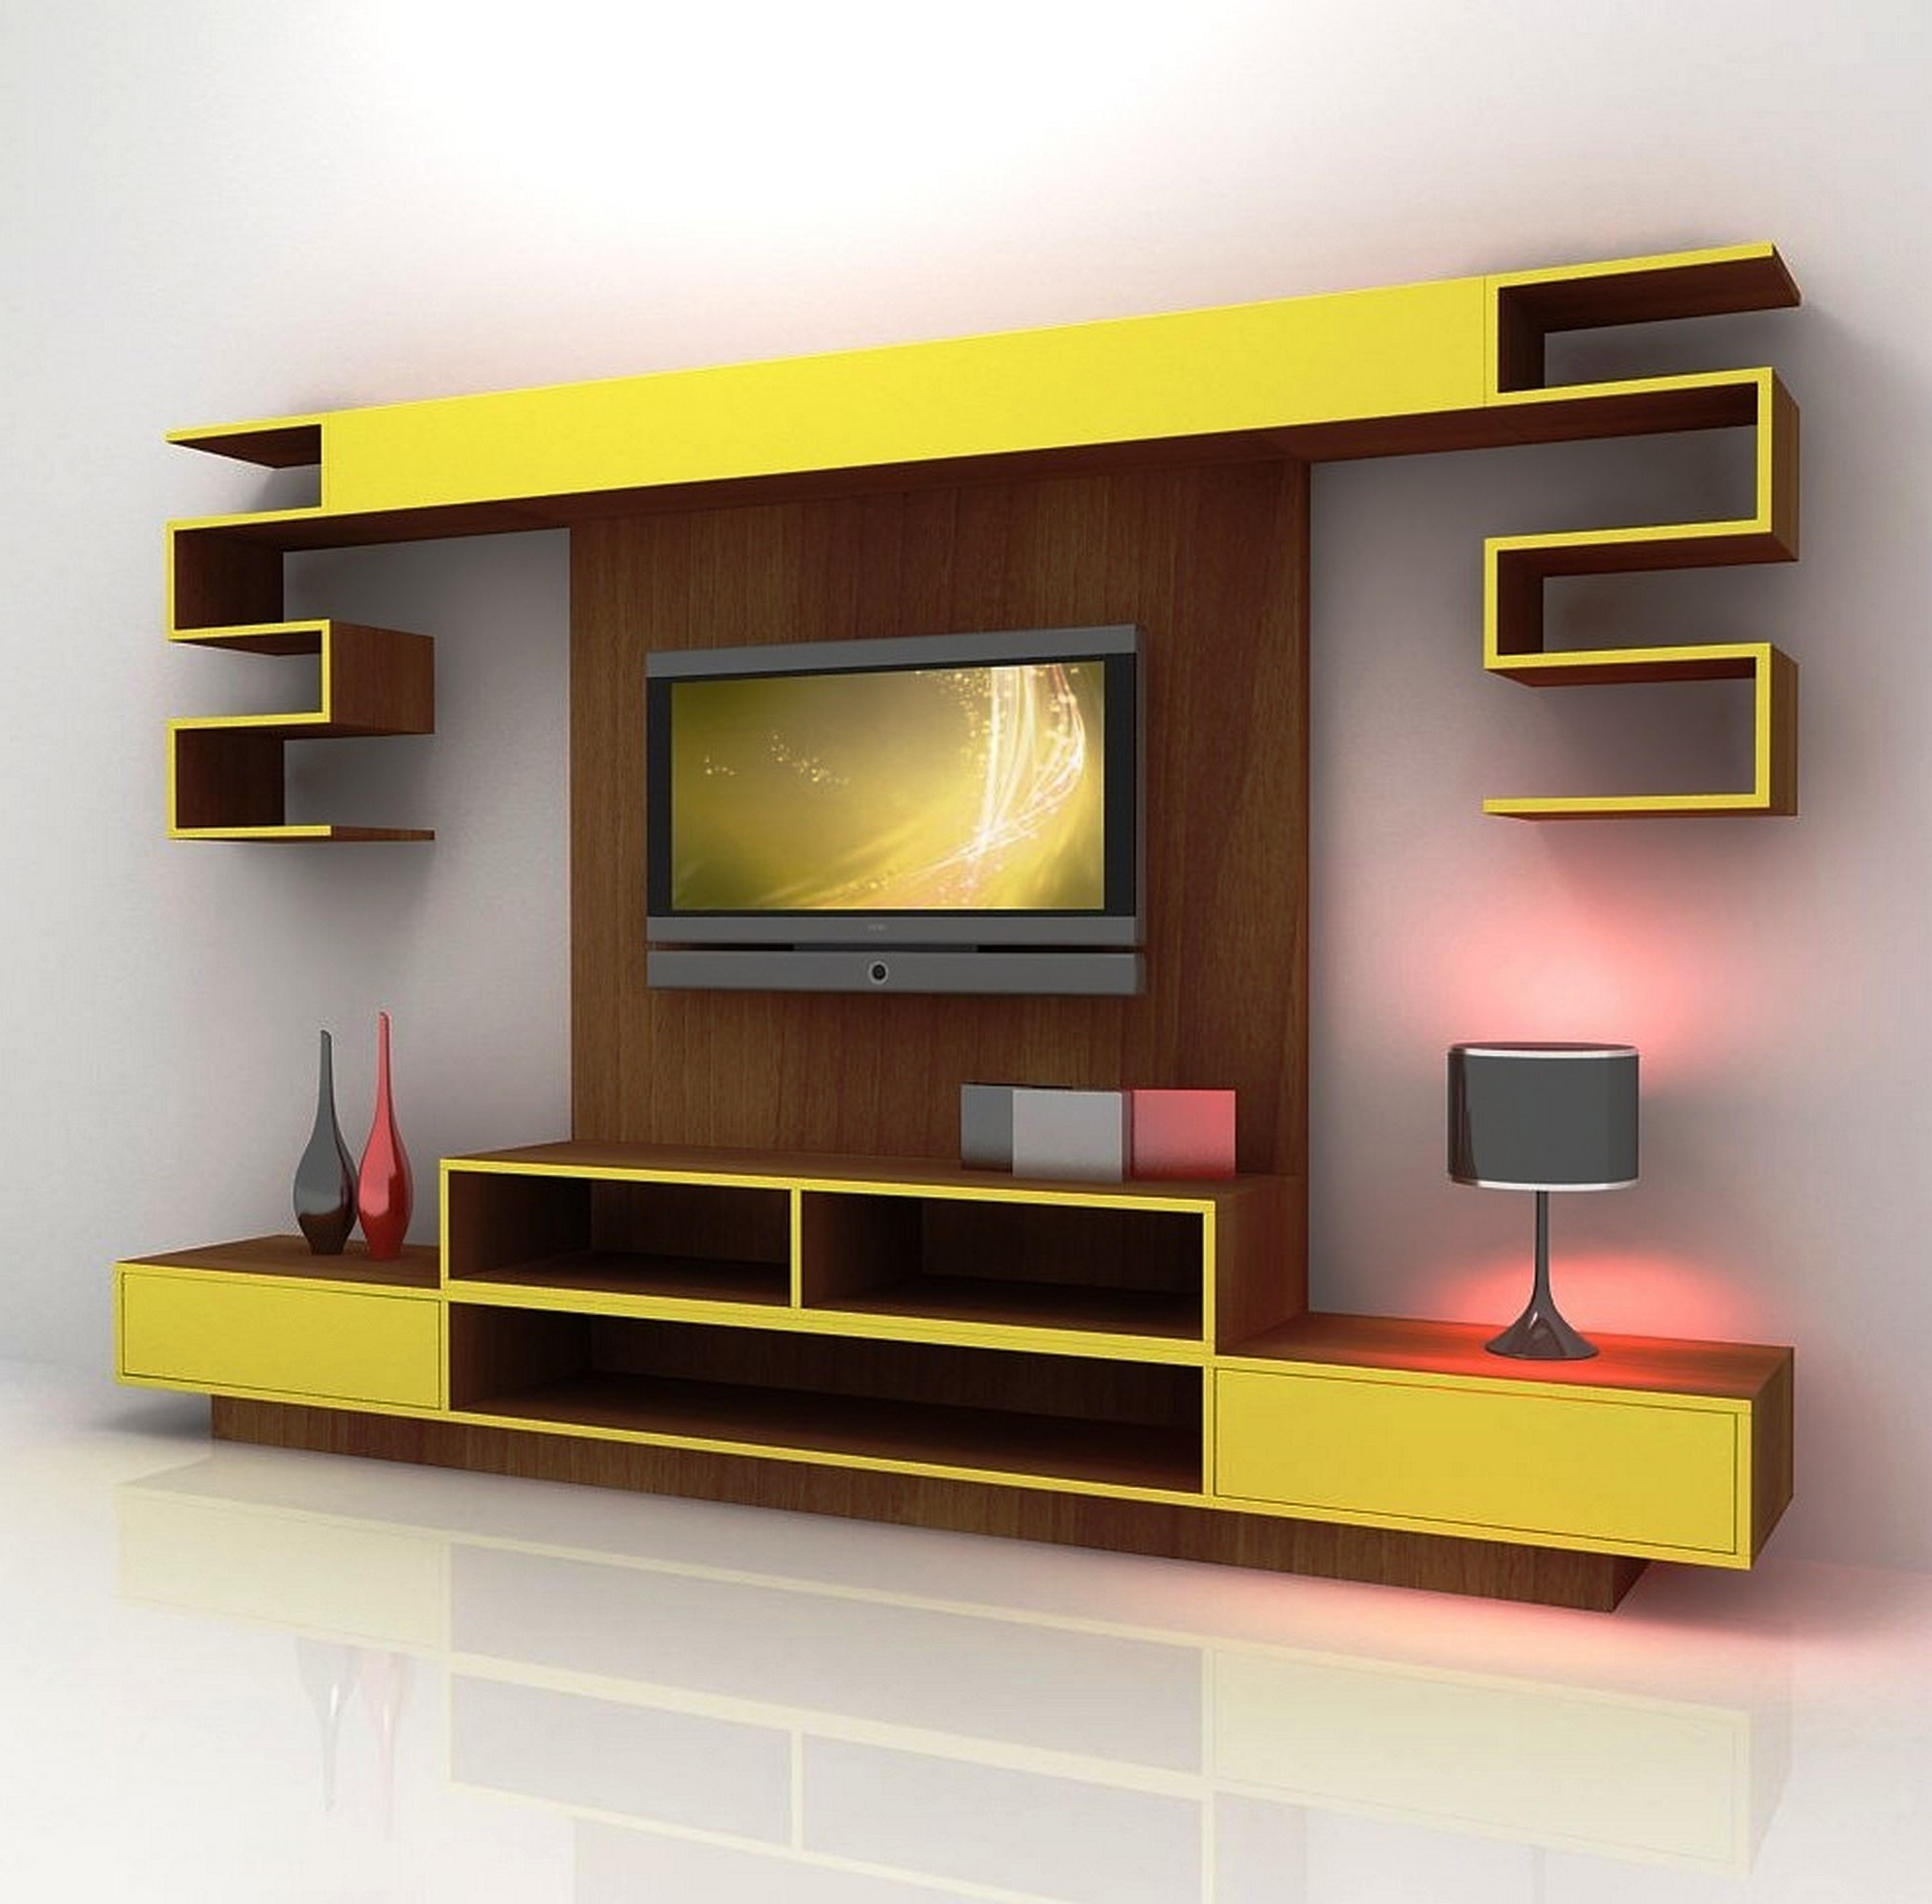 Bookcases : Tv Storage Bench Tv Stand And Bookcase Combo Colorful In Best And Newest Tv Stand Bookcases Combo (View 14 of 15)